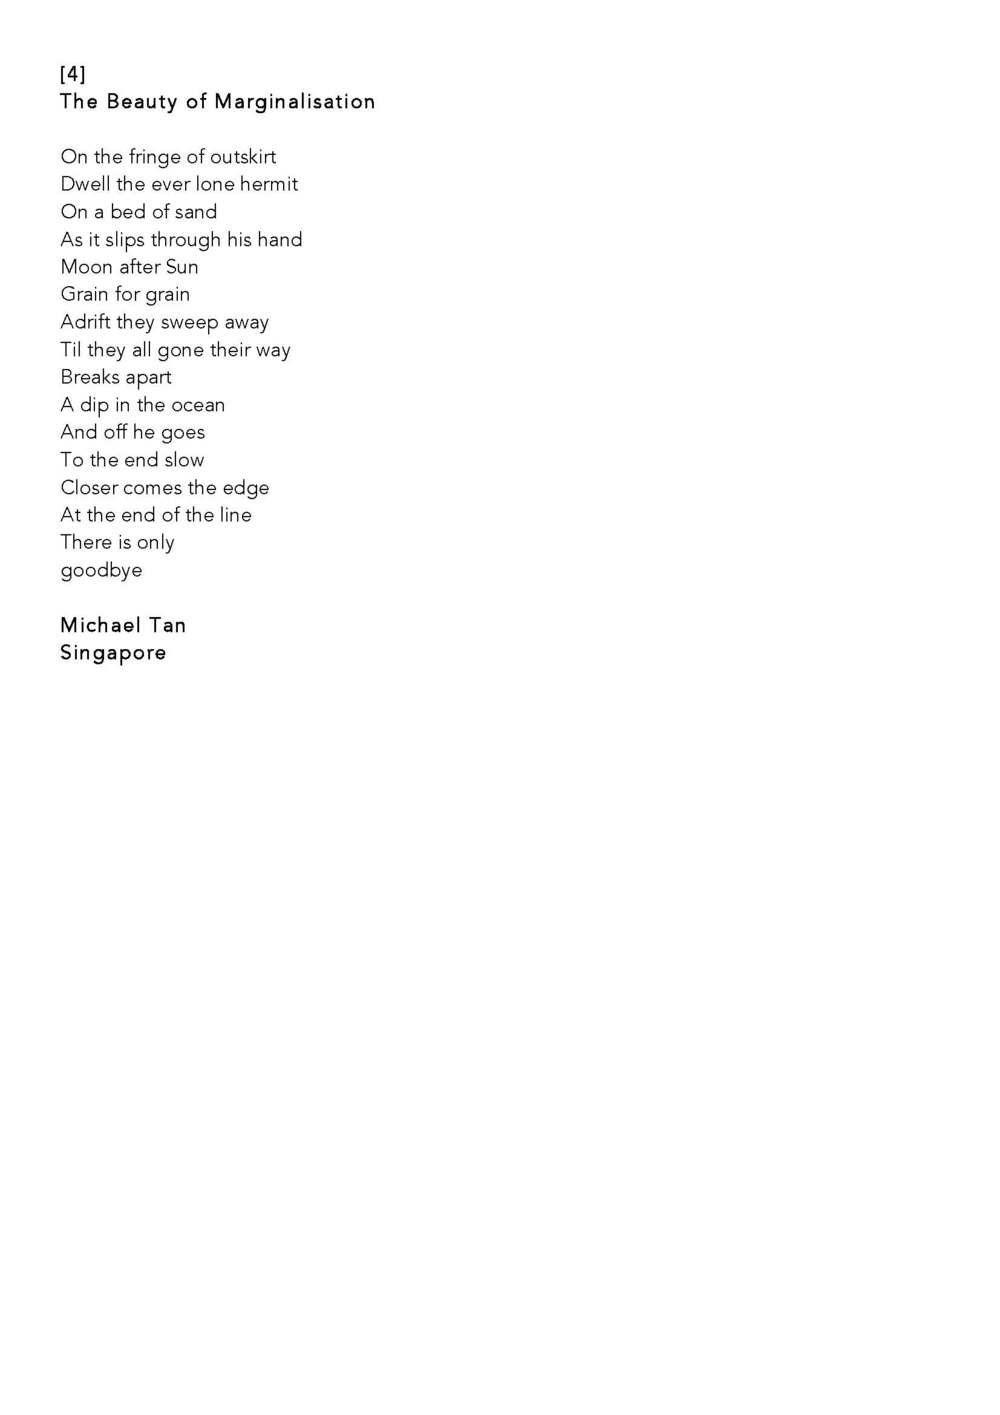 Poetry Collection - Everyone can Poetry _ For 16 Sept 2014_Page_04.jpg